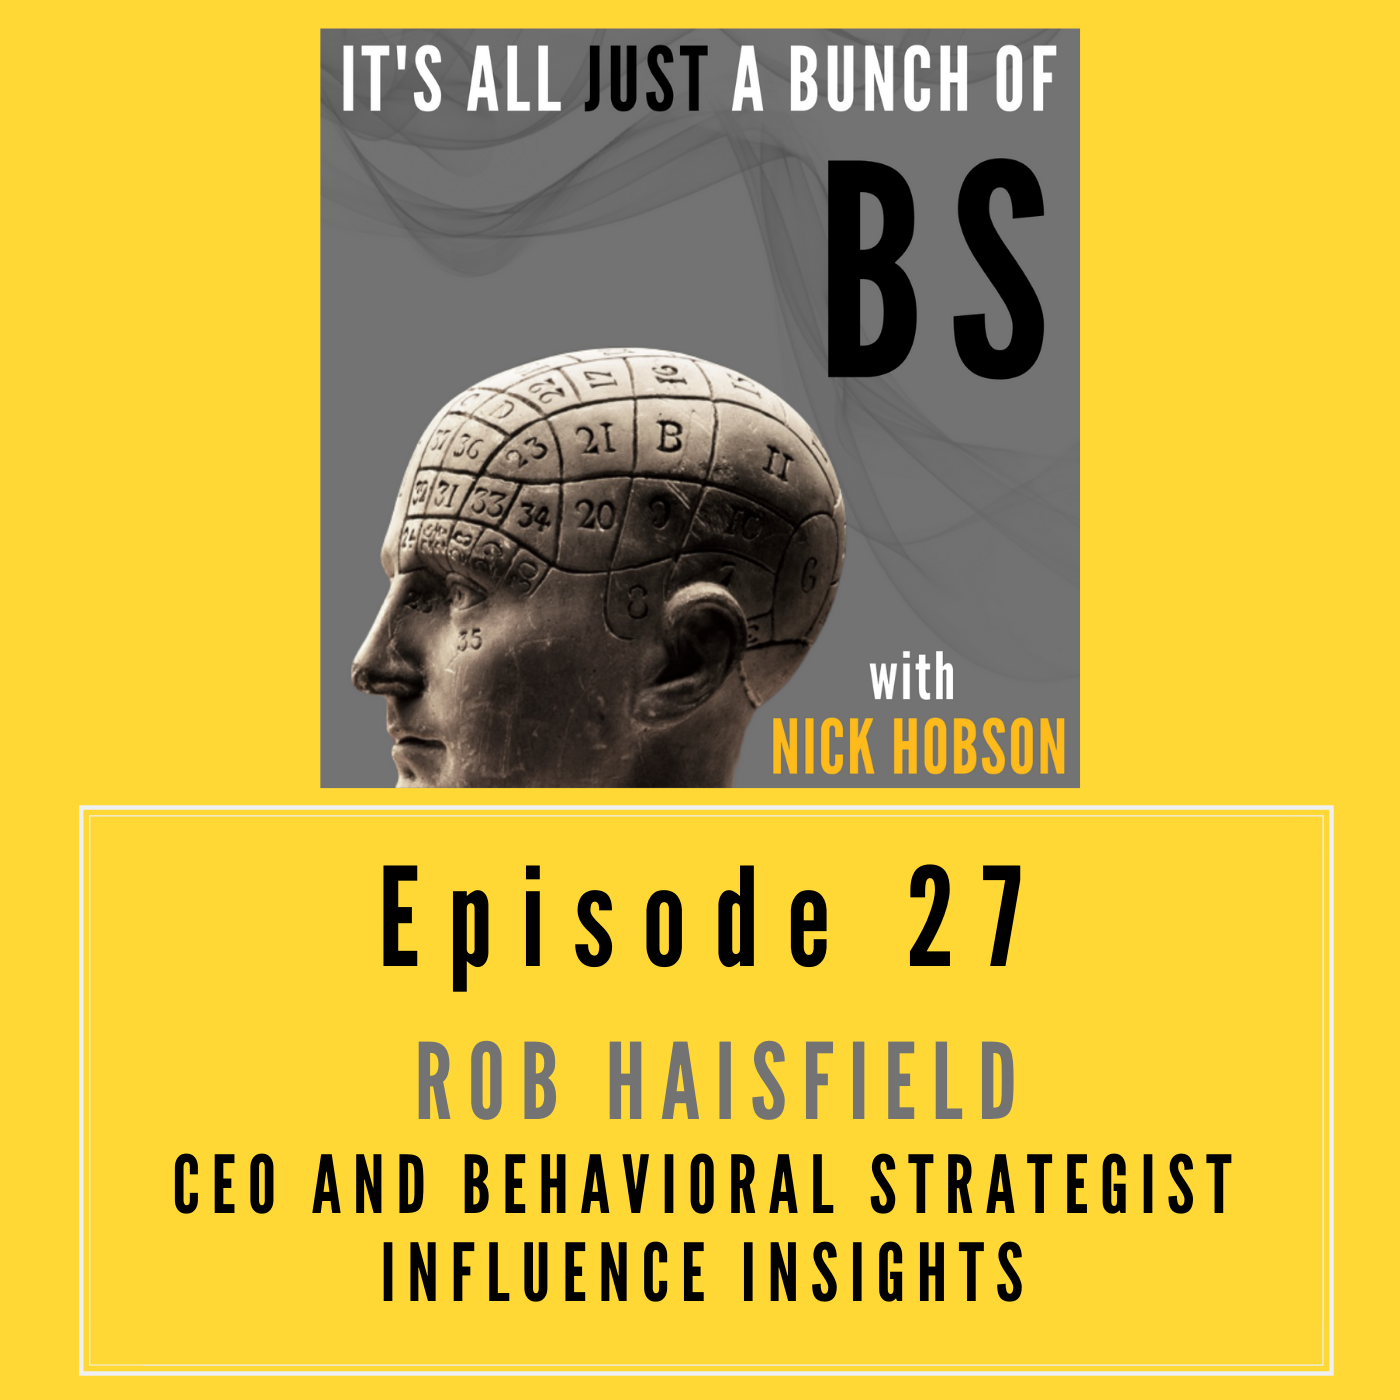 Episode 27 with ROB HAISFIELD: How Products Tell Us About Ourselves